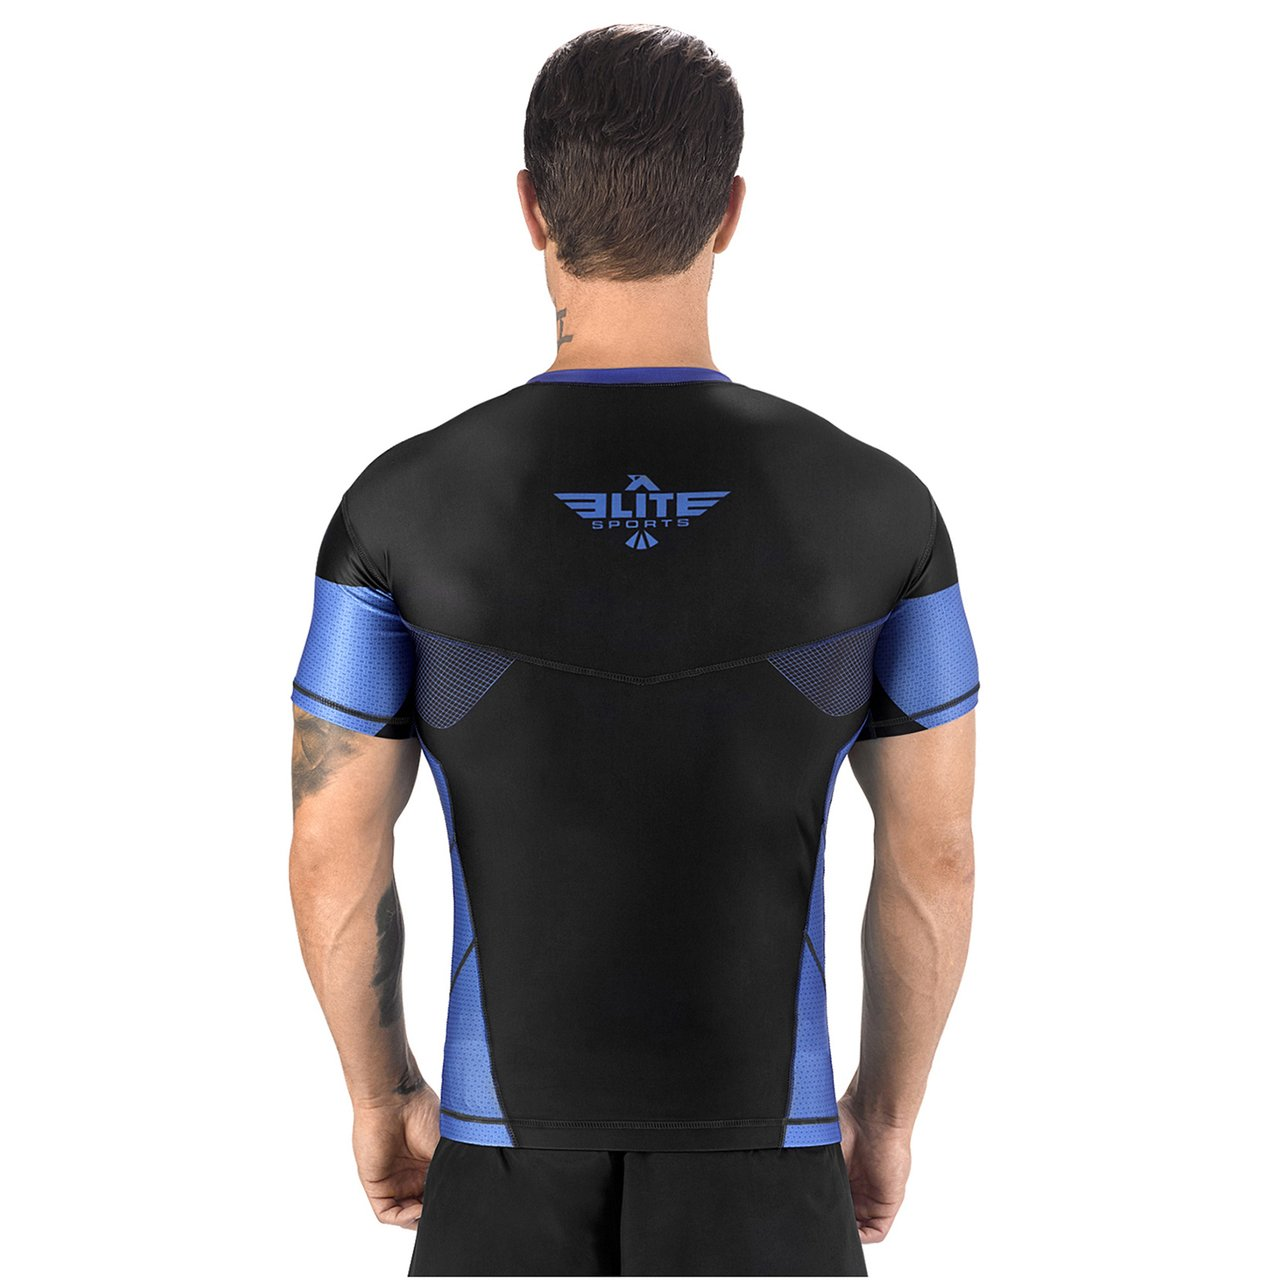 Load image into Gallery viewer, Elite Sports Honey Comb Sublimation Black/Blue Short Sleeve Wrestling Rash Guard